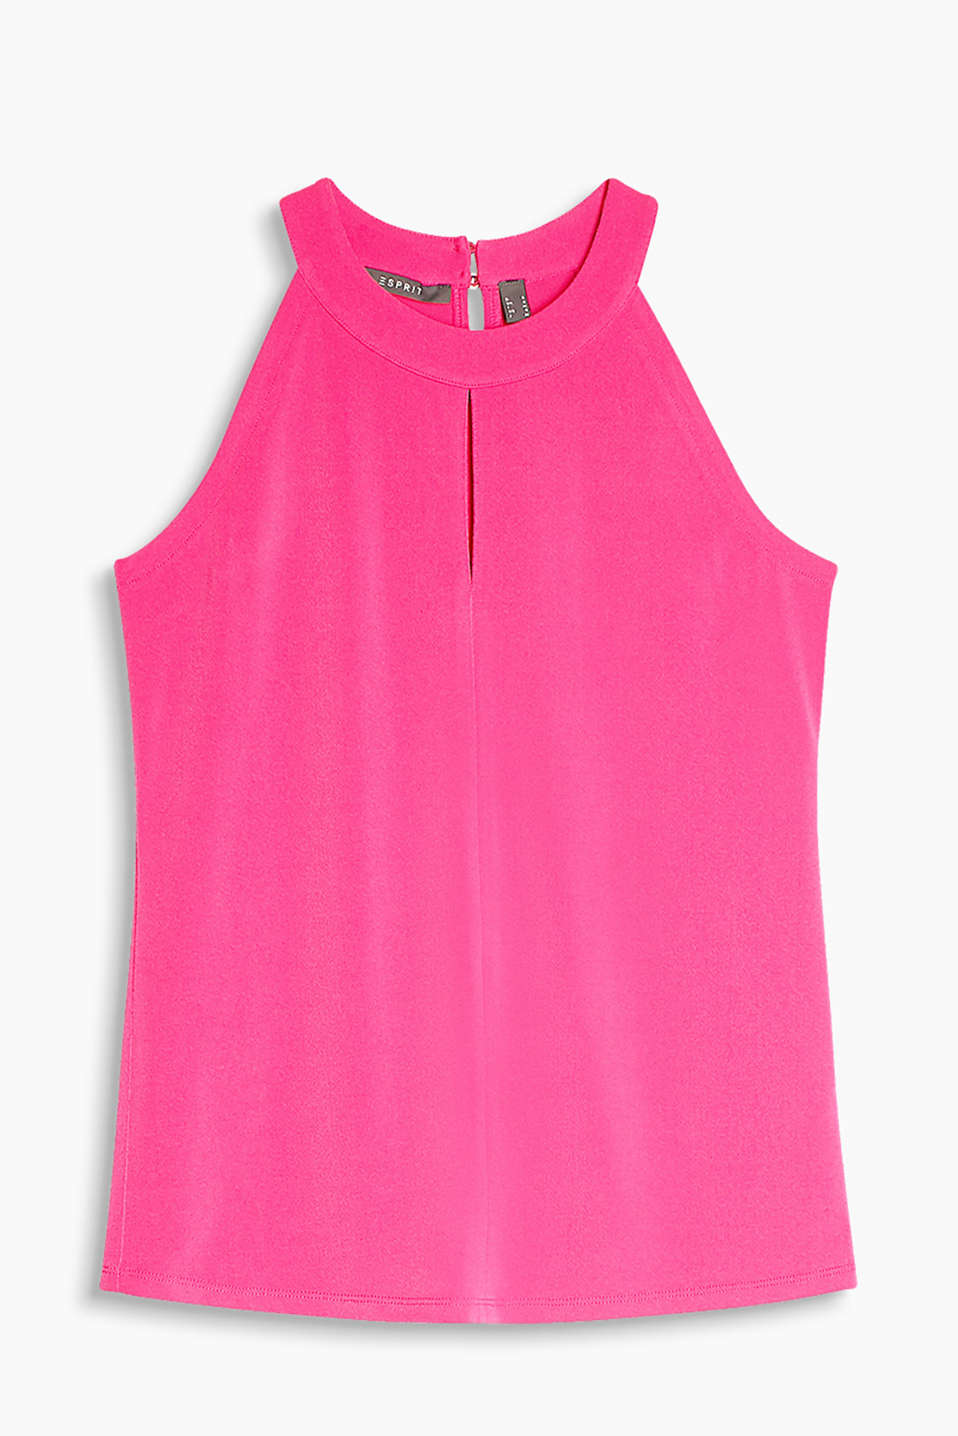 Feminine and stylish, stretch jersey halterneck top with cut-away shoulders